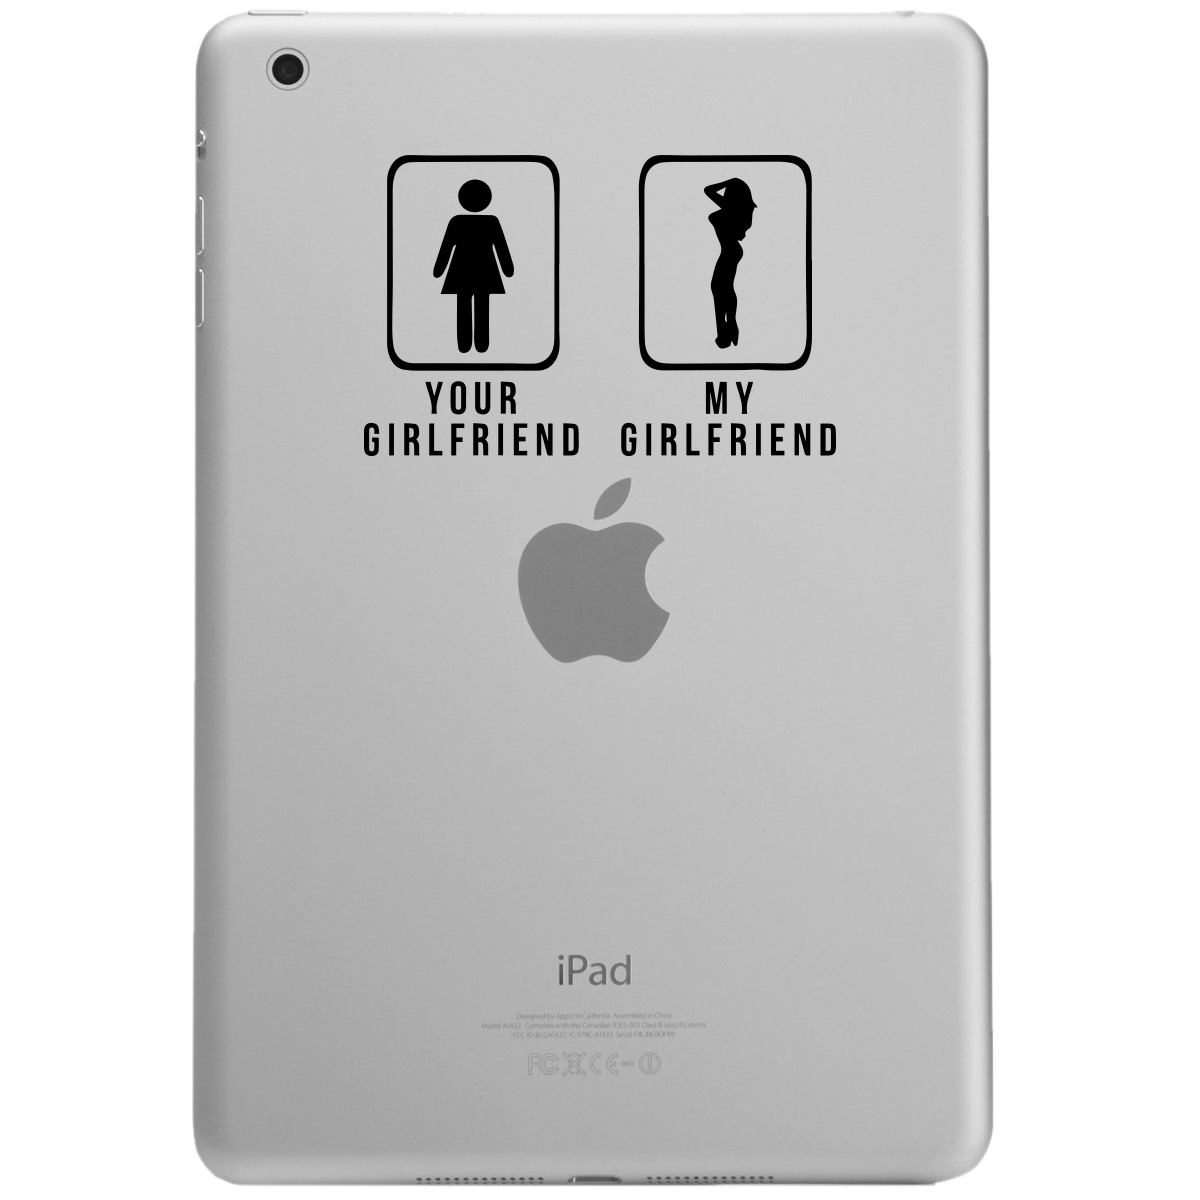 Your GF vs My GF Funny Door Signs iPad Tablet Vinyl Sticker Decal